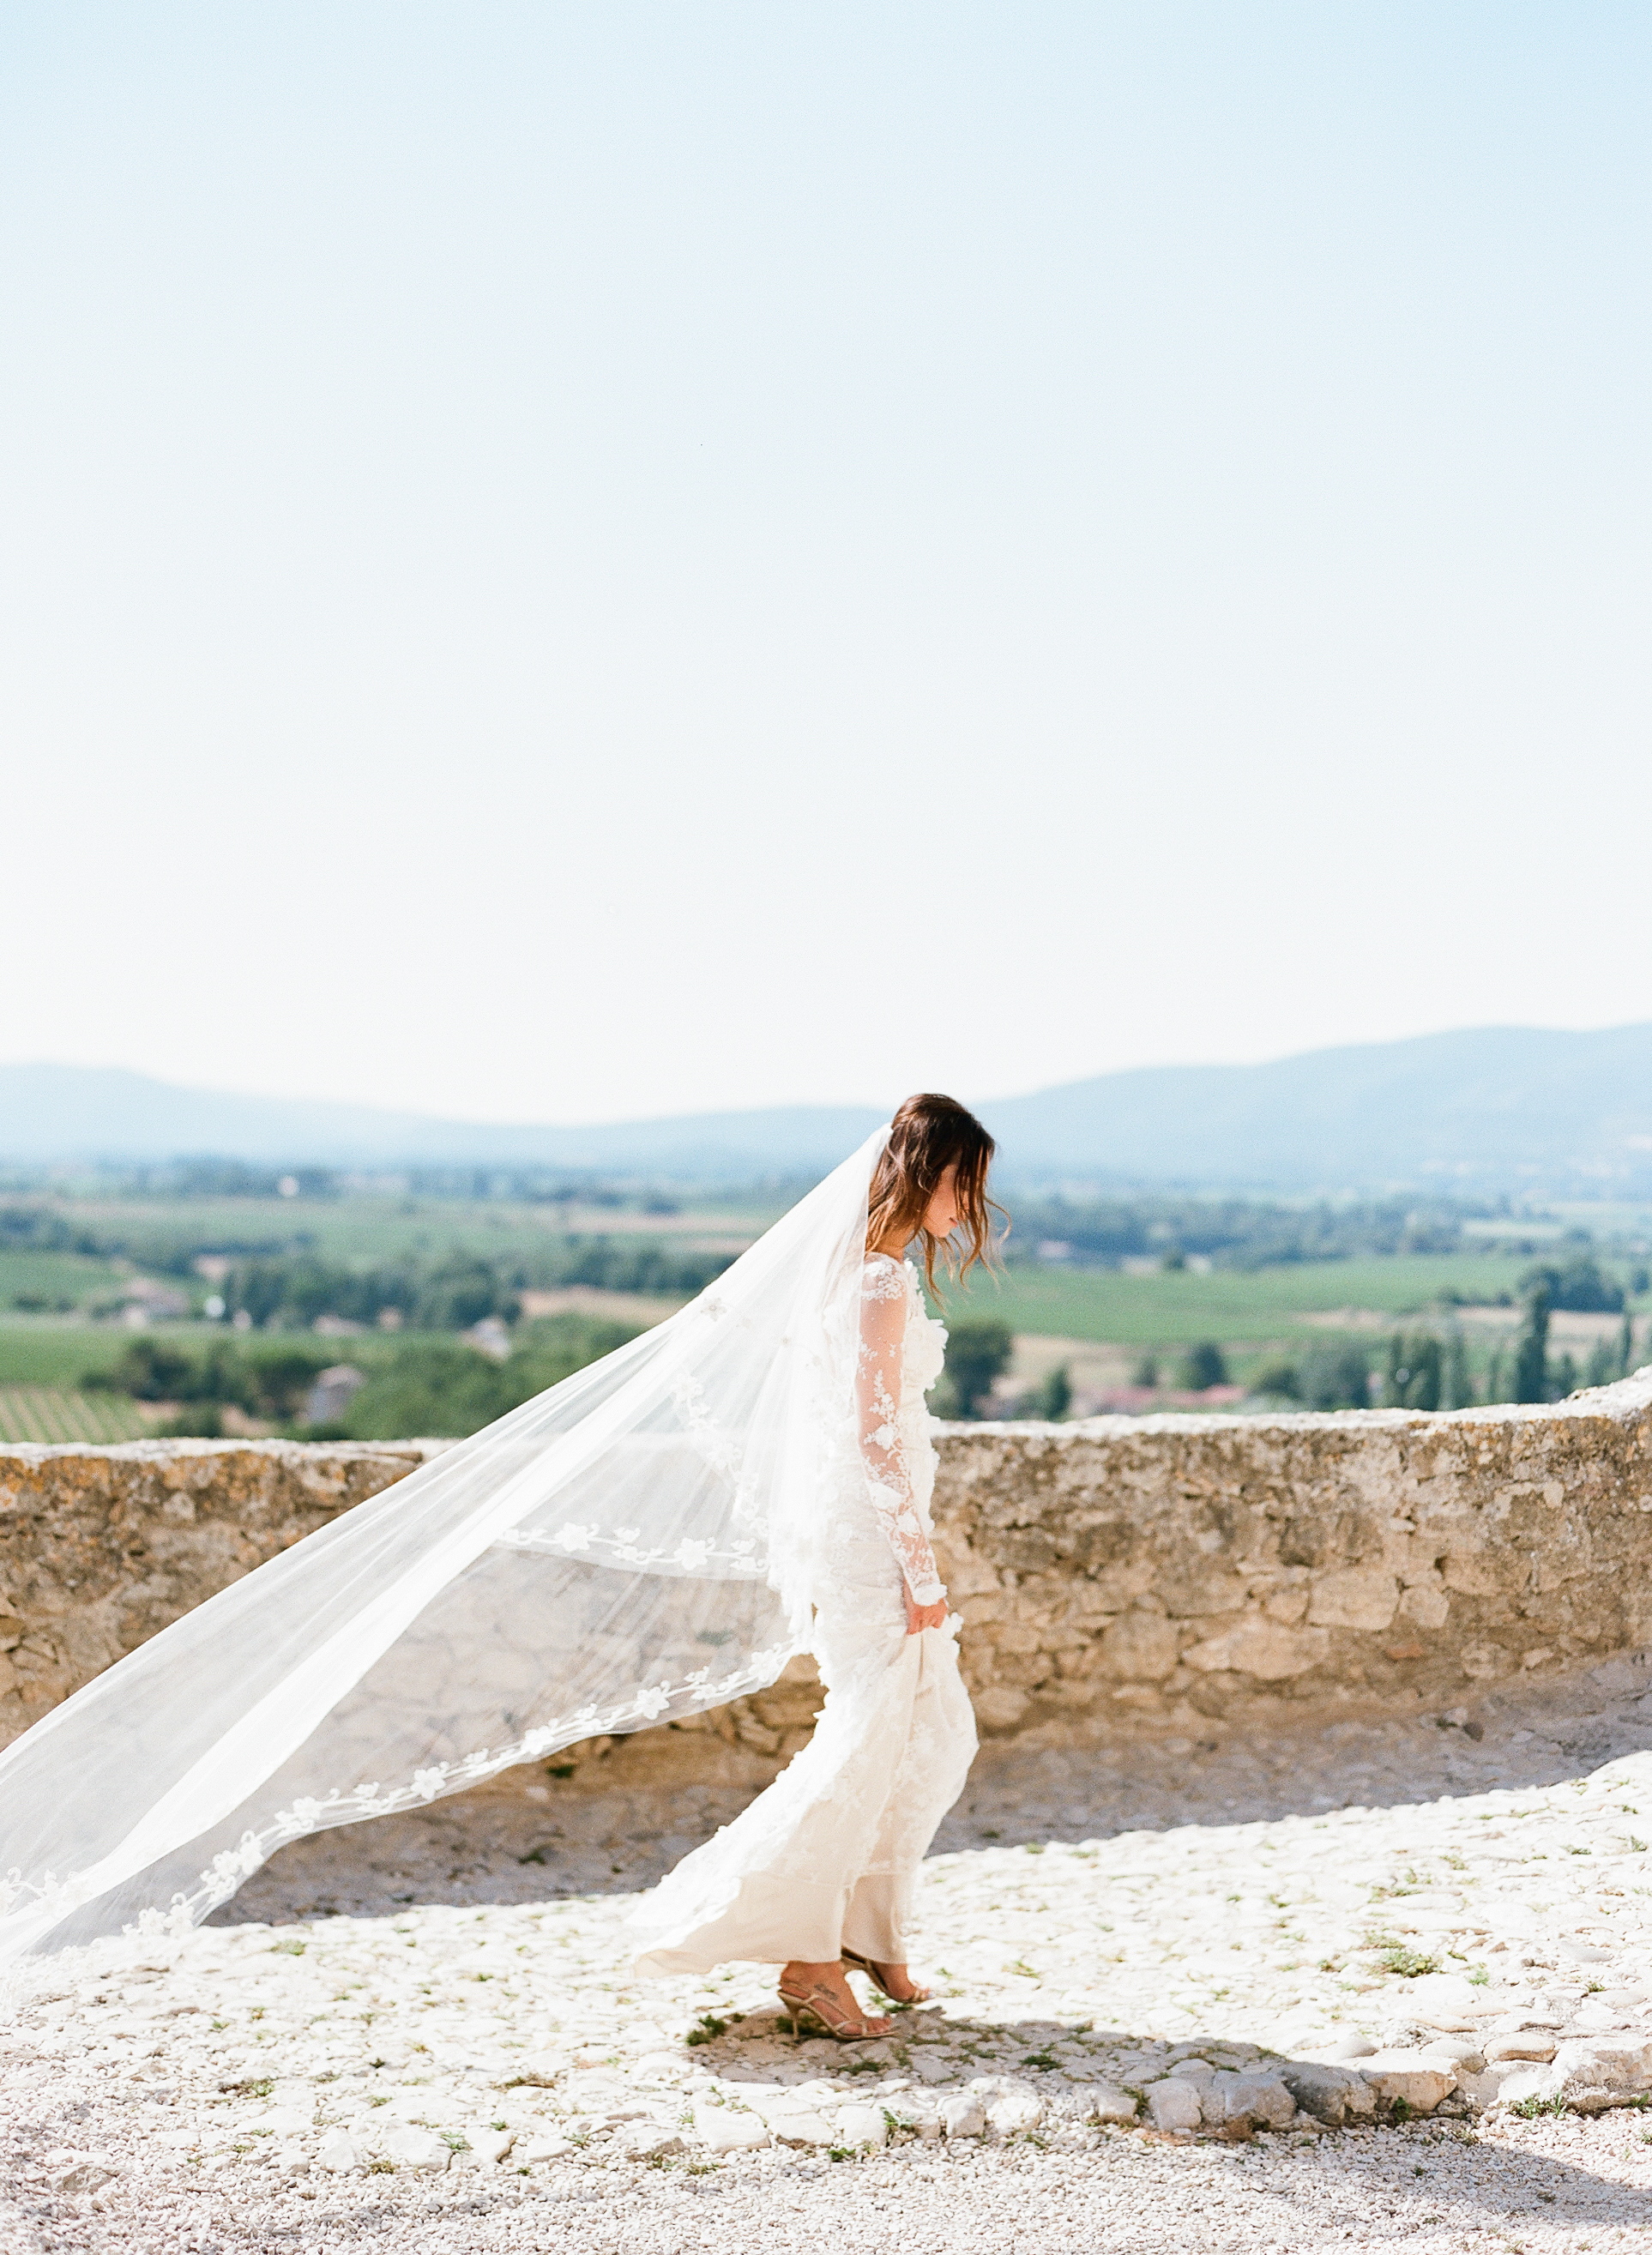 A bride takes a walk on a rooftop in Provence, France; Sylvie Gil Photography